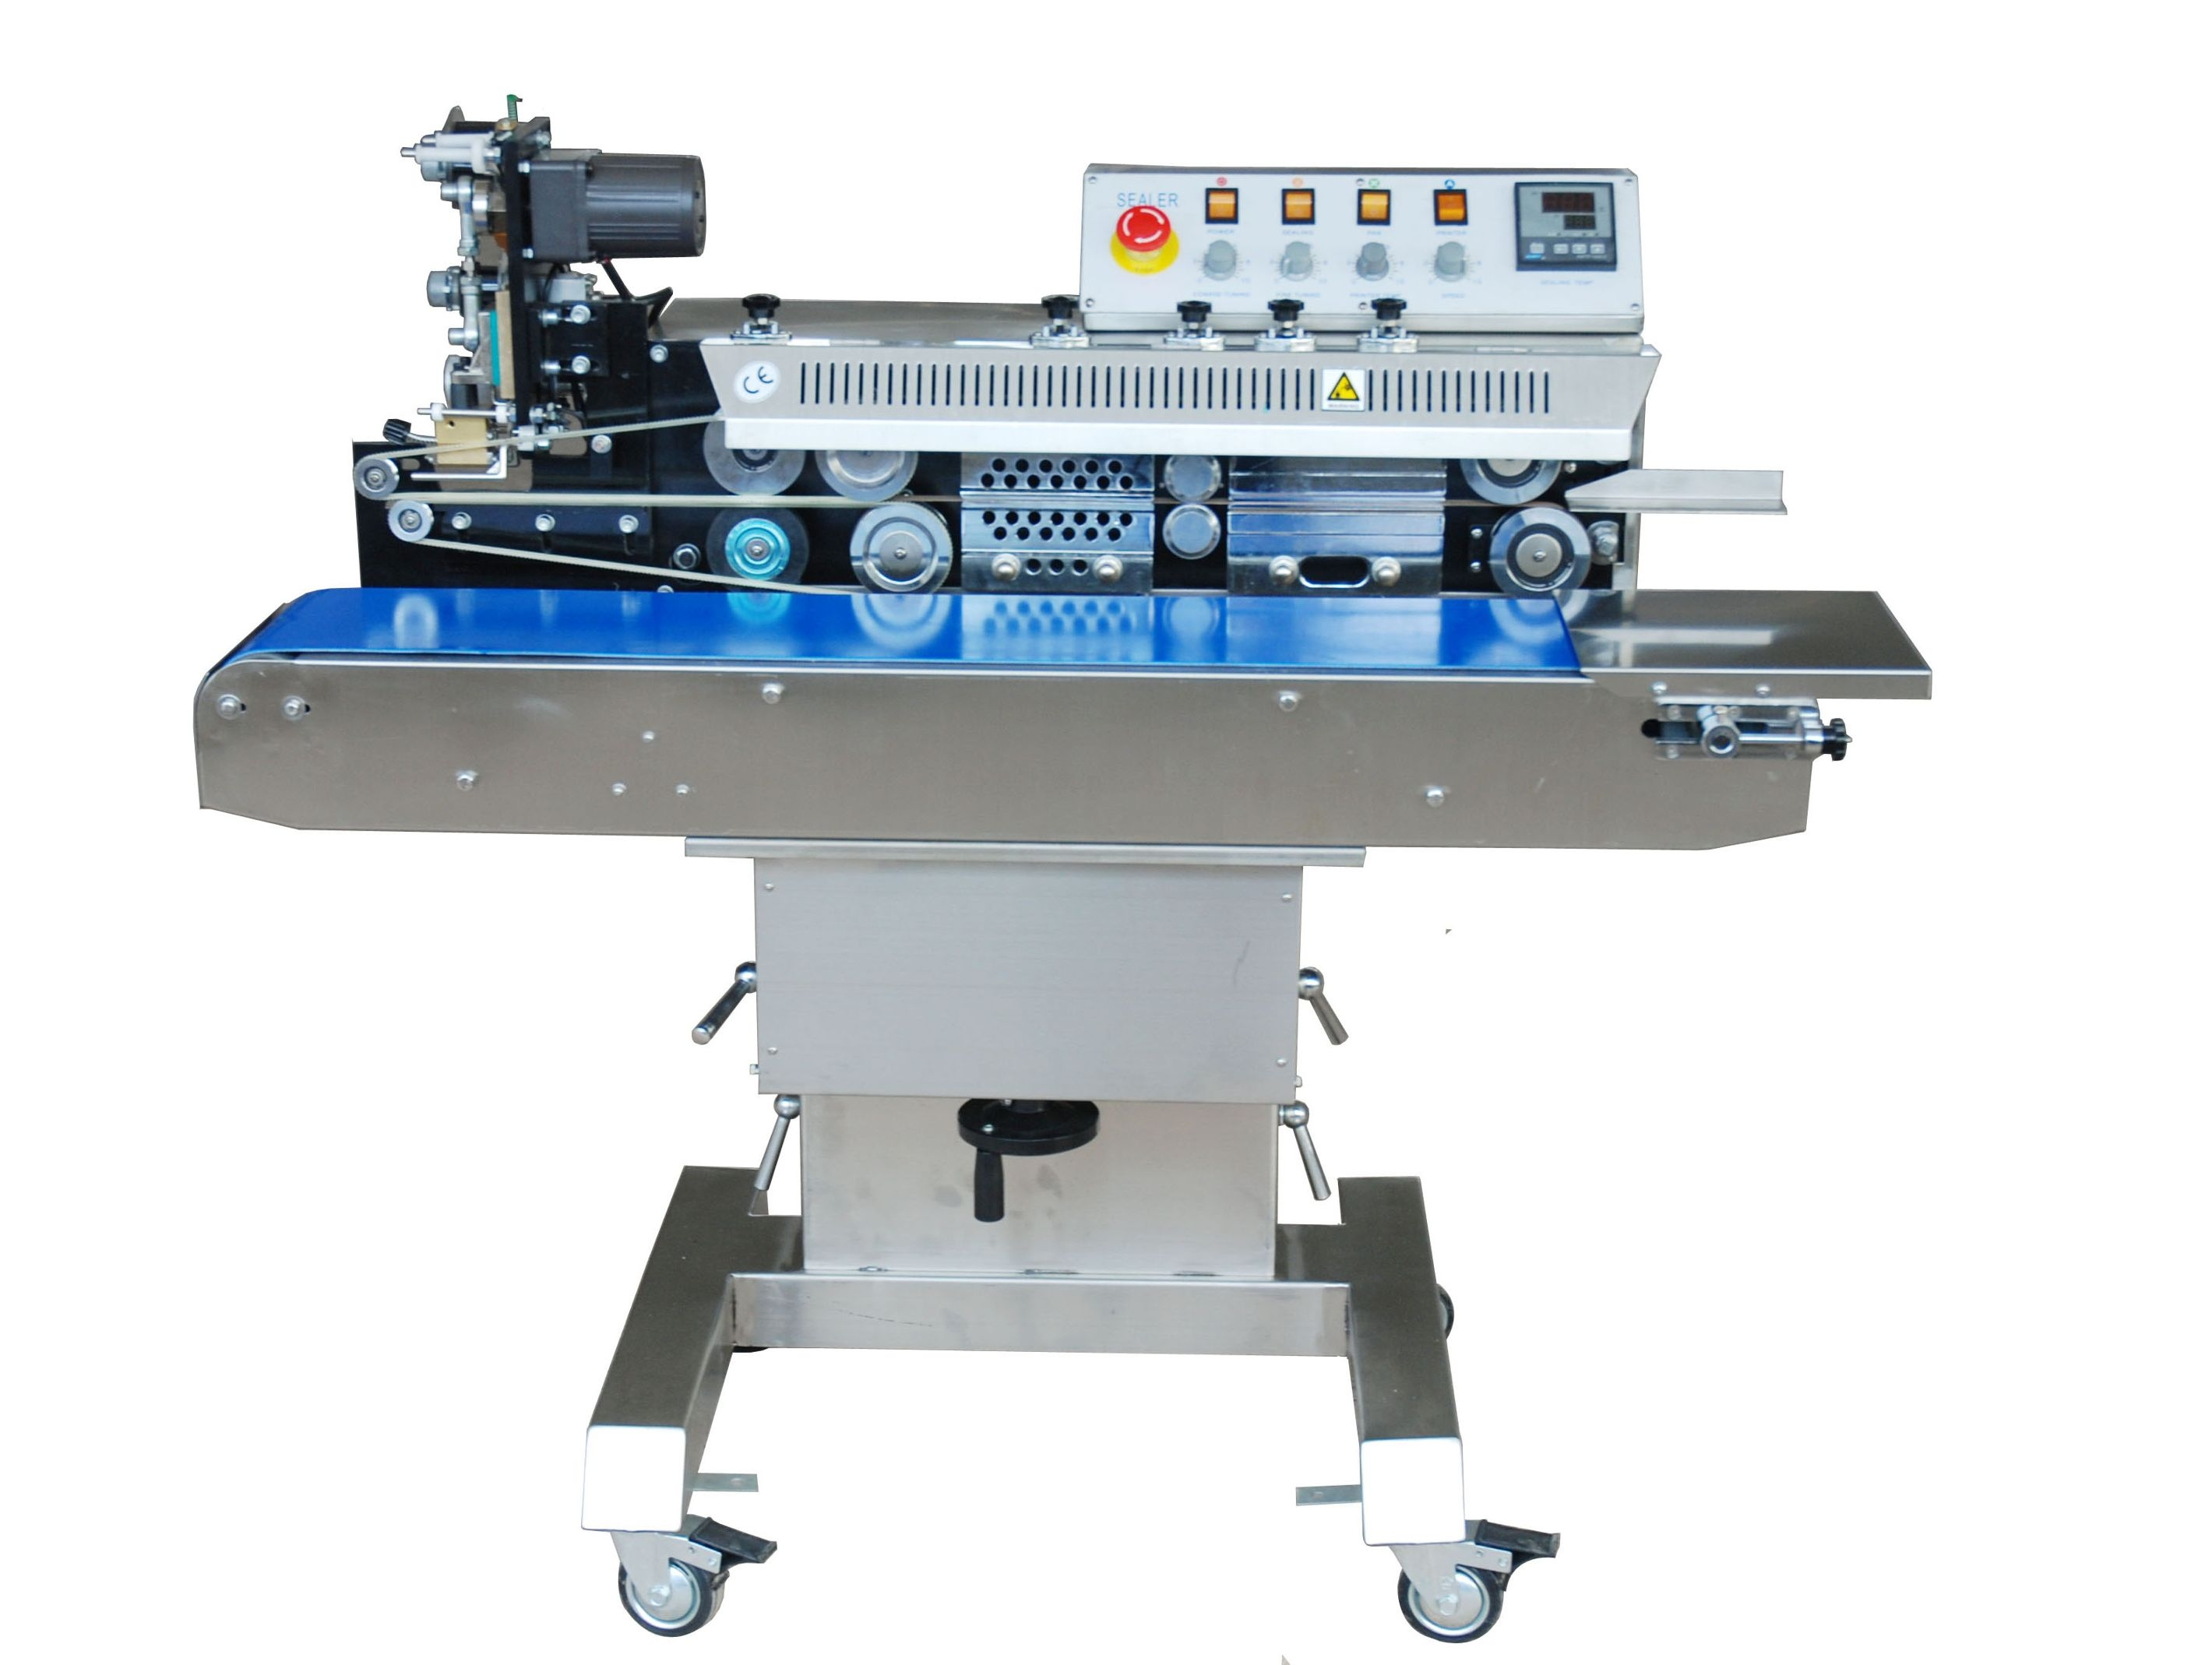 SealerSales Free-Standing Horizontal Color Ribbon Printing Continuous Band Sealer (FRS-1120W), SealerSales brand Image 1